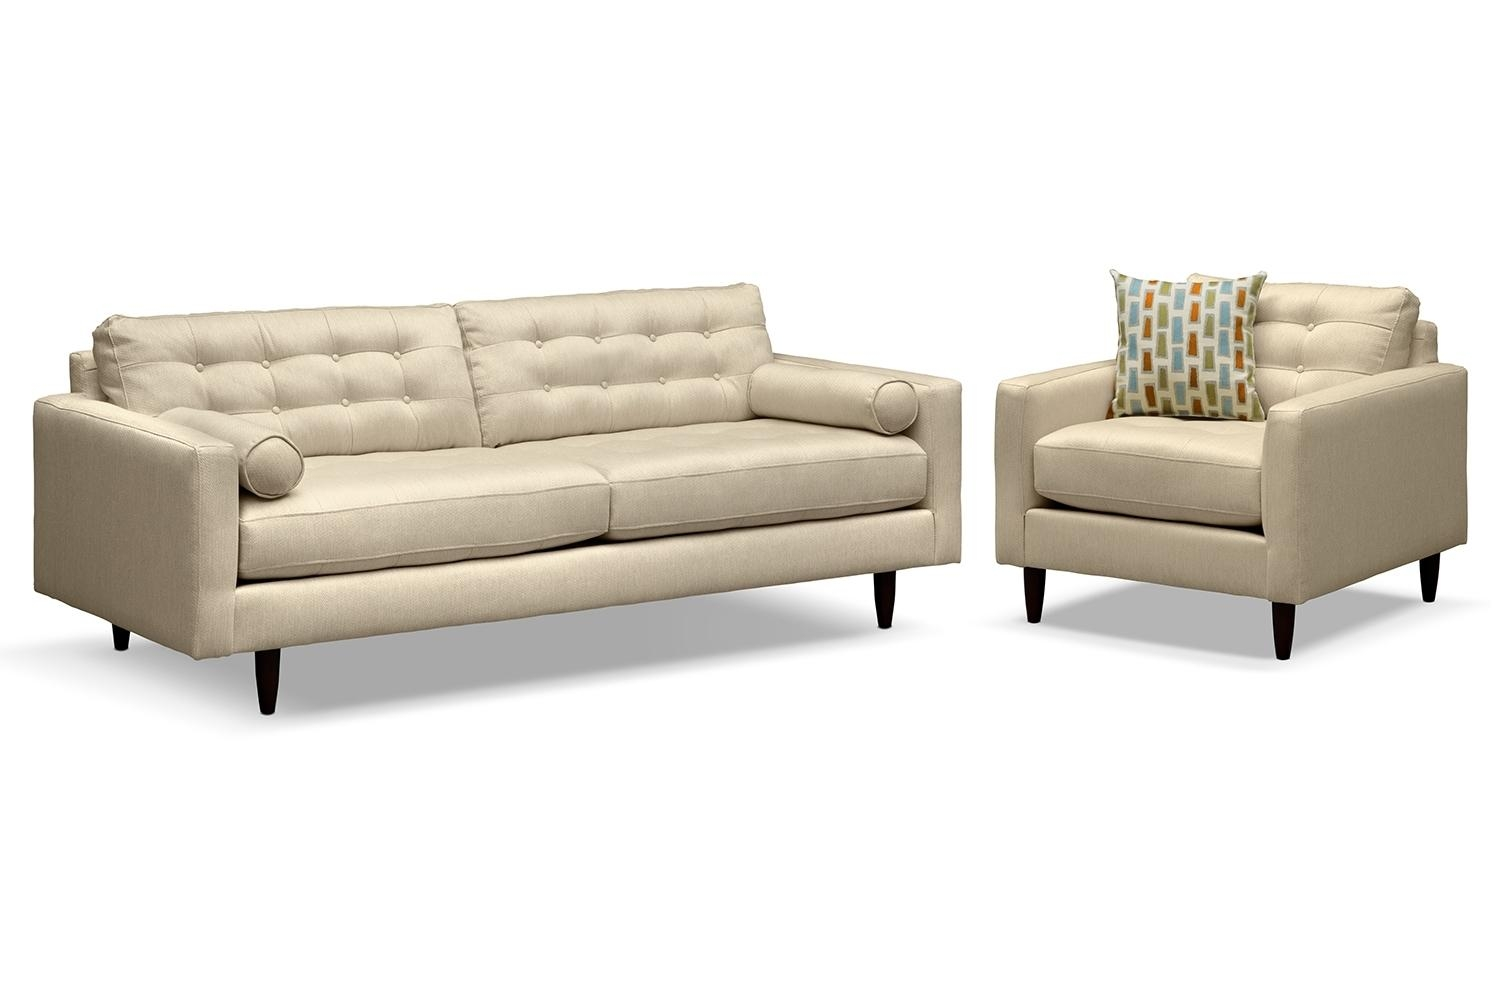 Furniture: Sectional Leather Sofas | Value City Furniture Outlet Pertaining To Value City Sofas (Image 4 of 20)